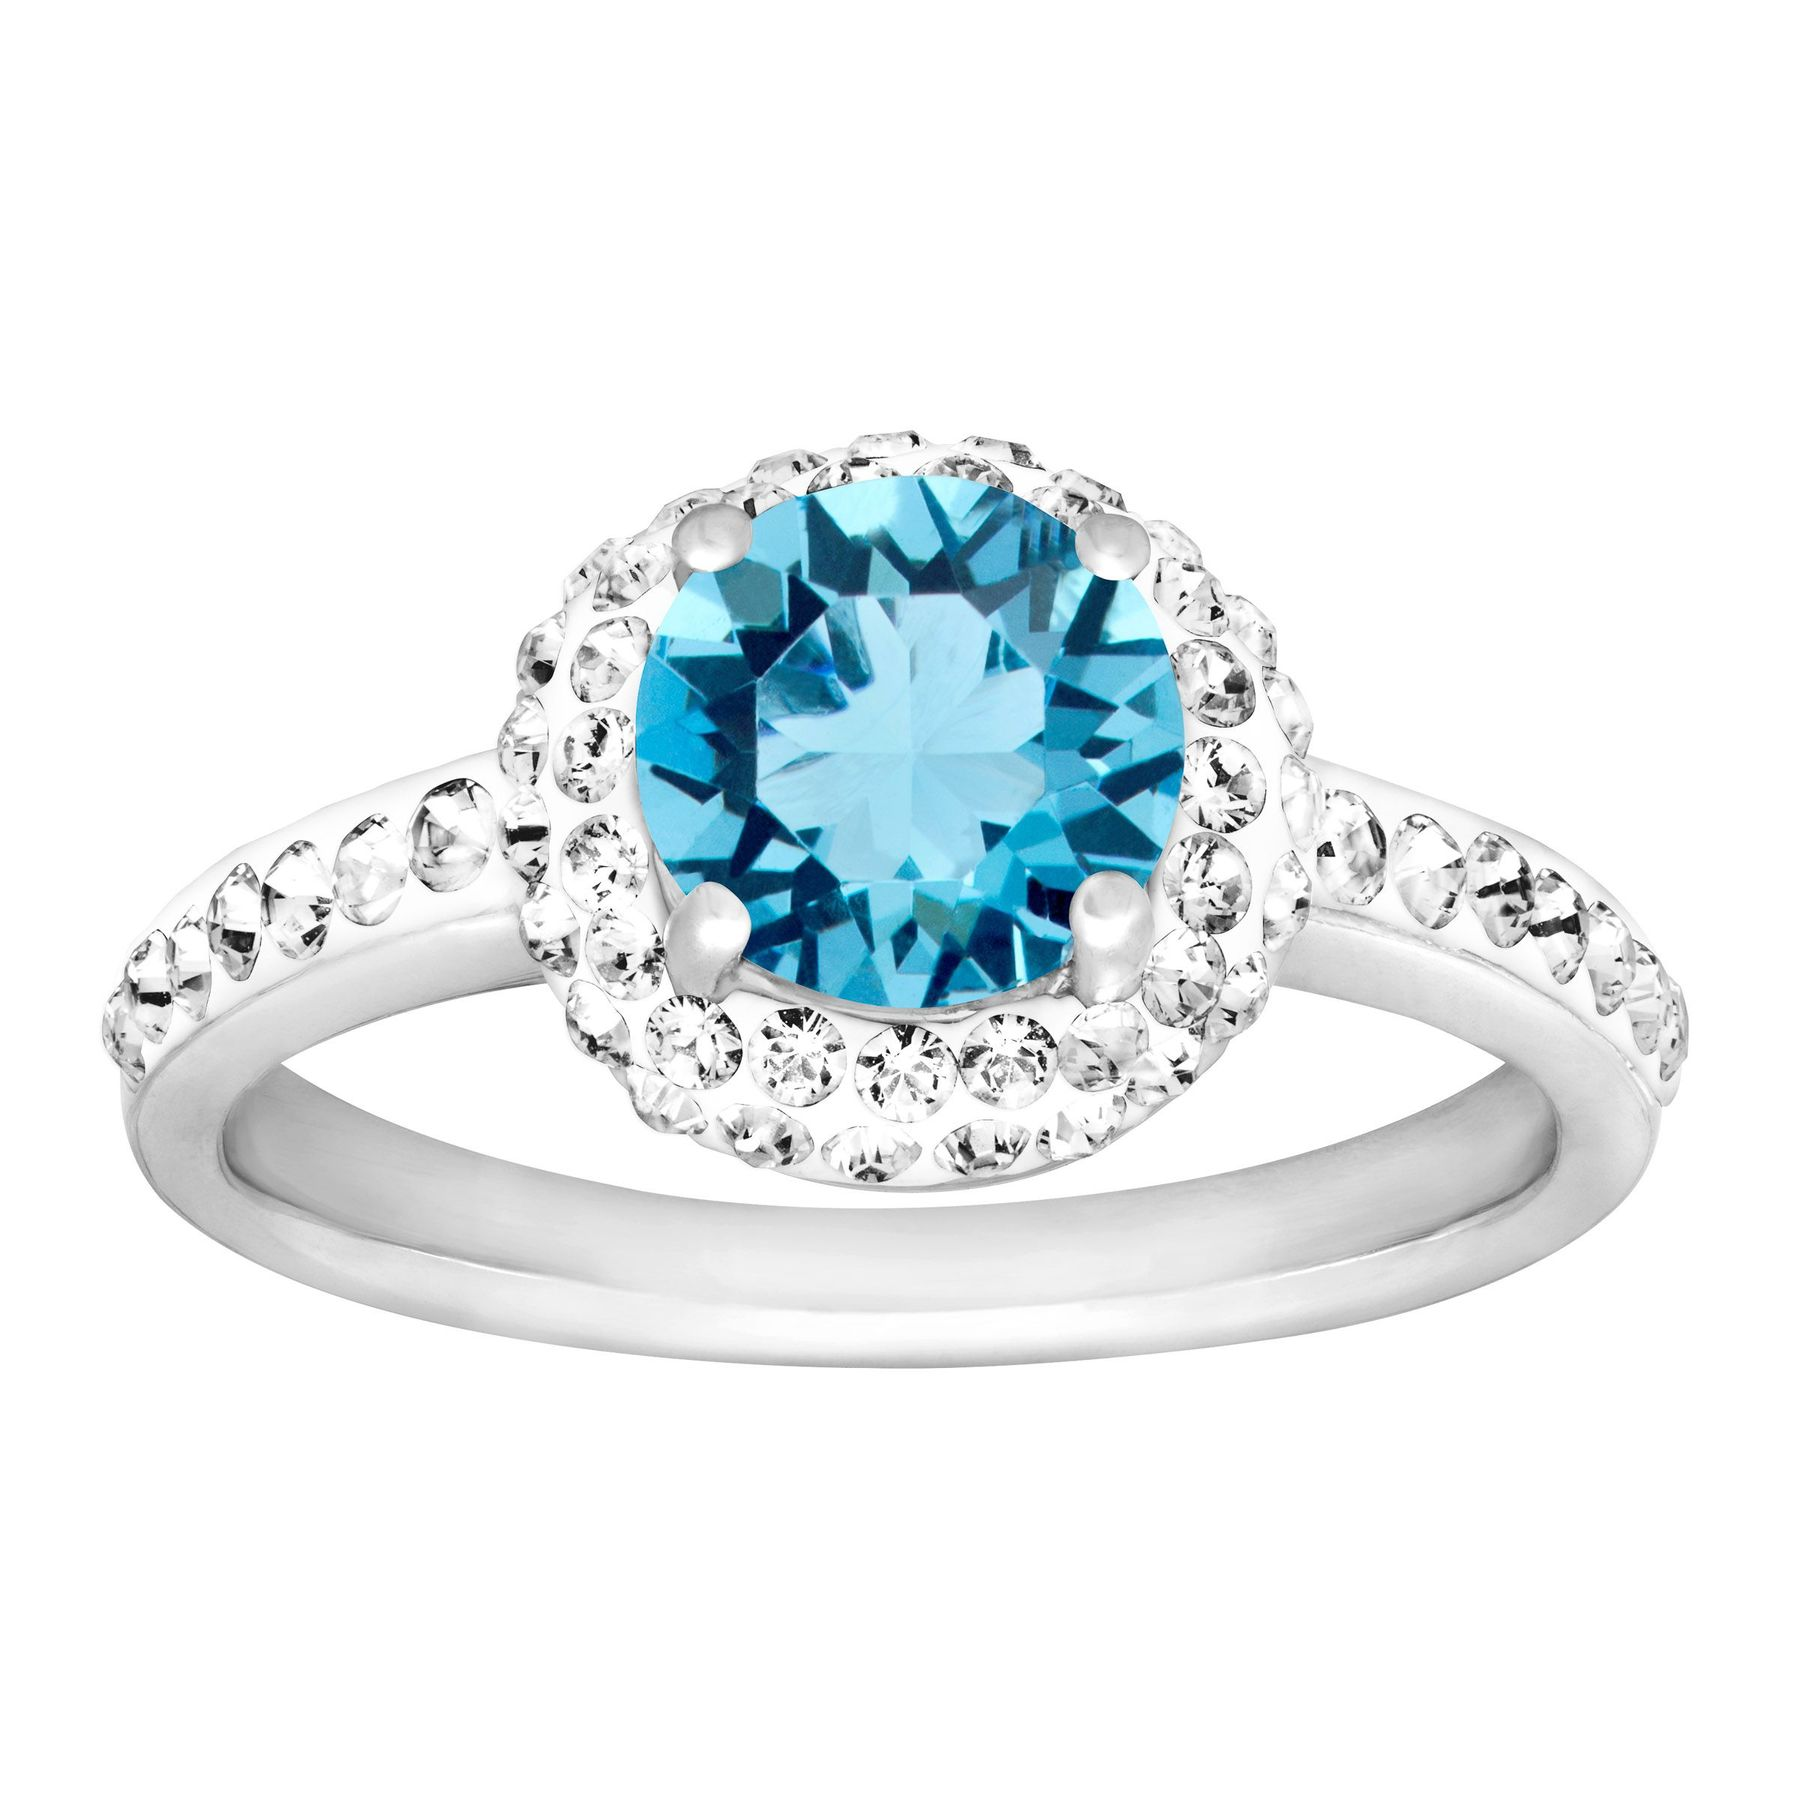 jl aquamarine my march what two tone rings oval simulated s gold solid mens birthstone size ring